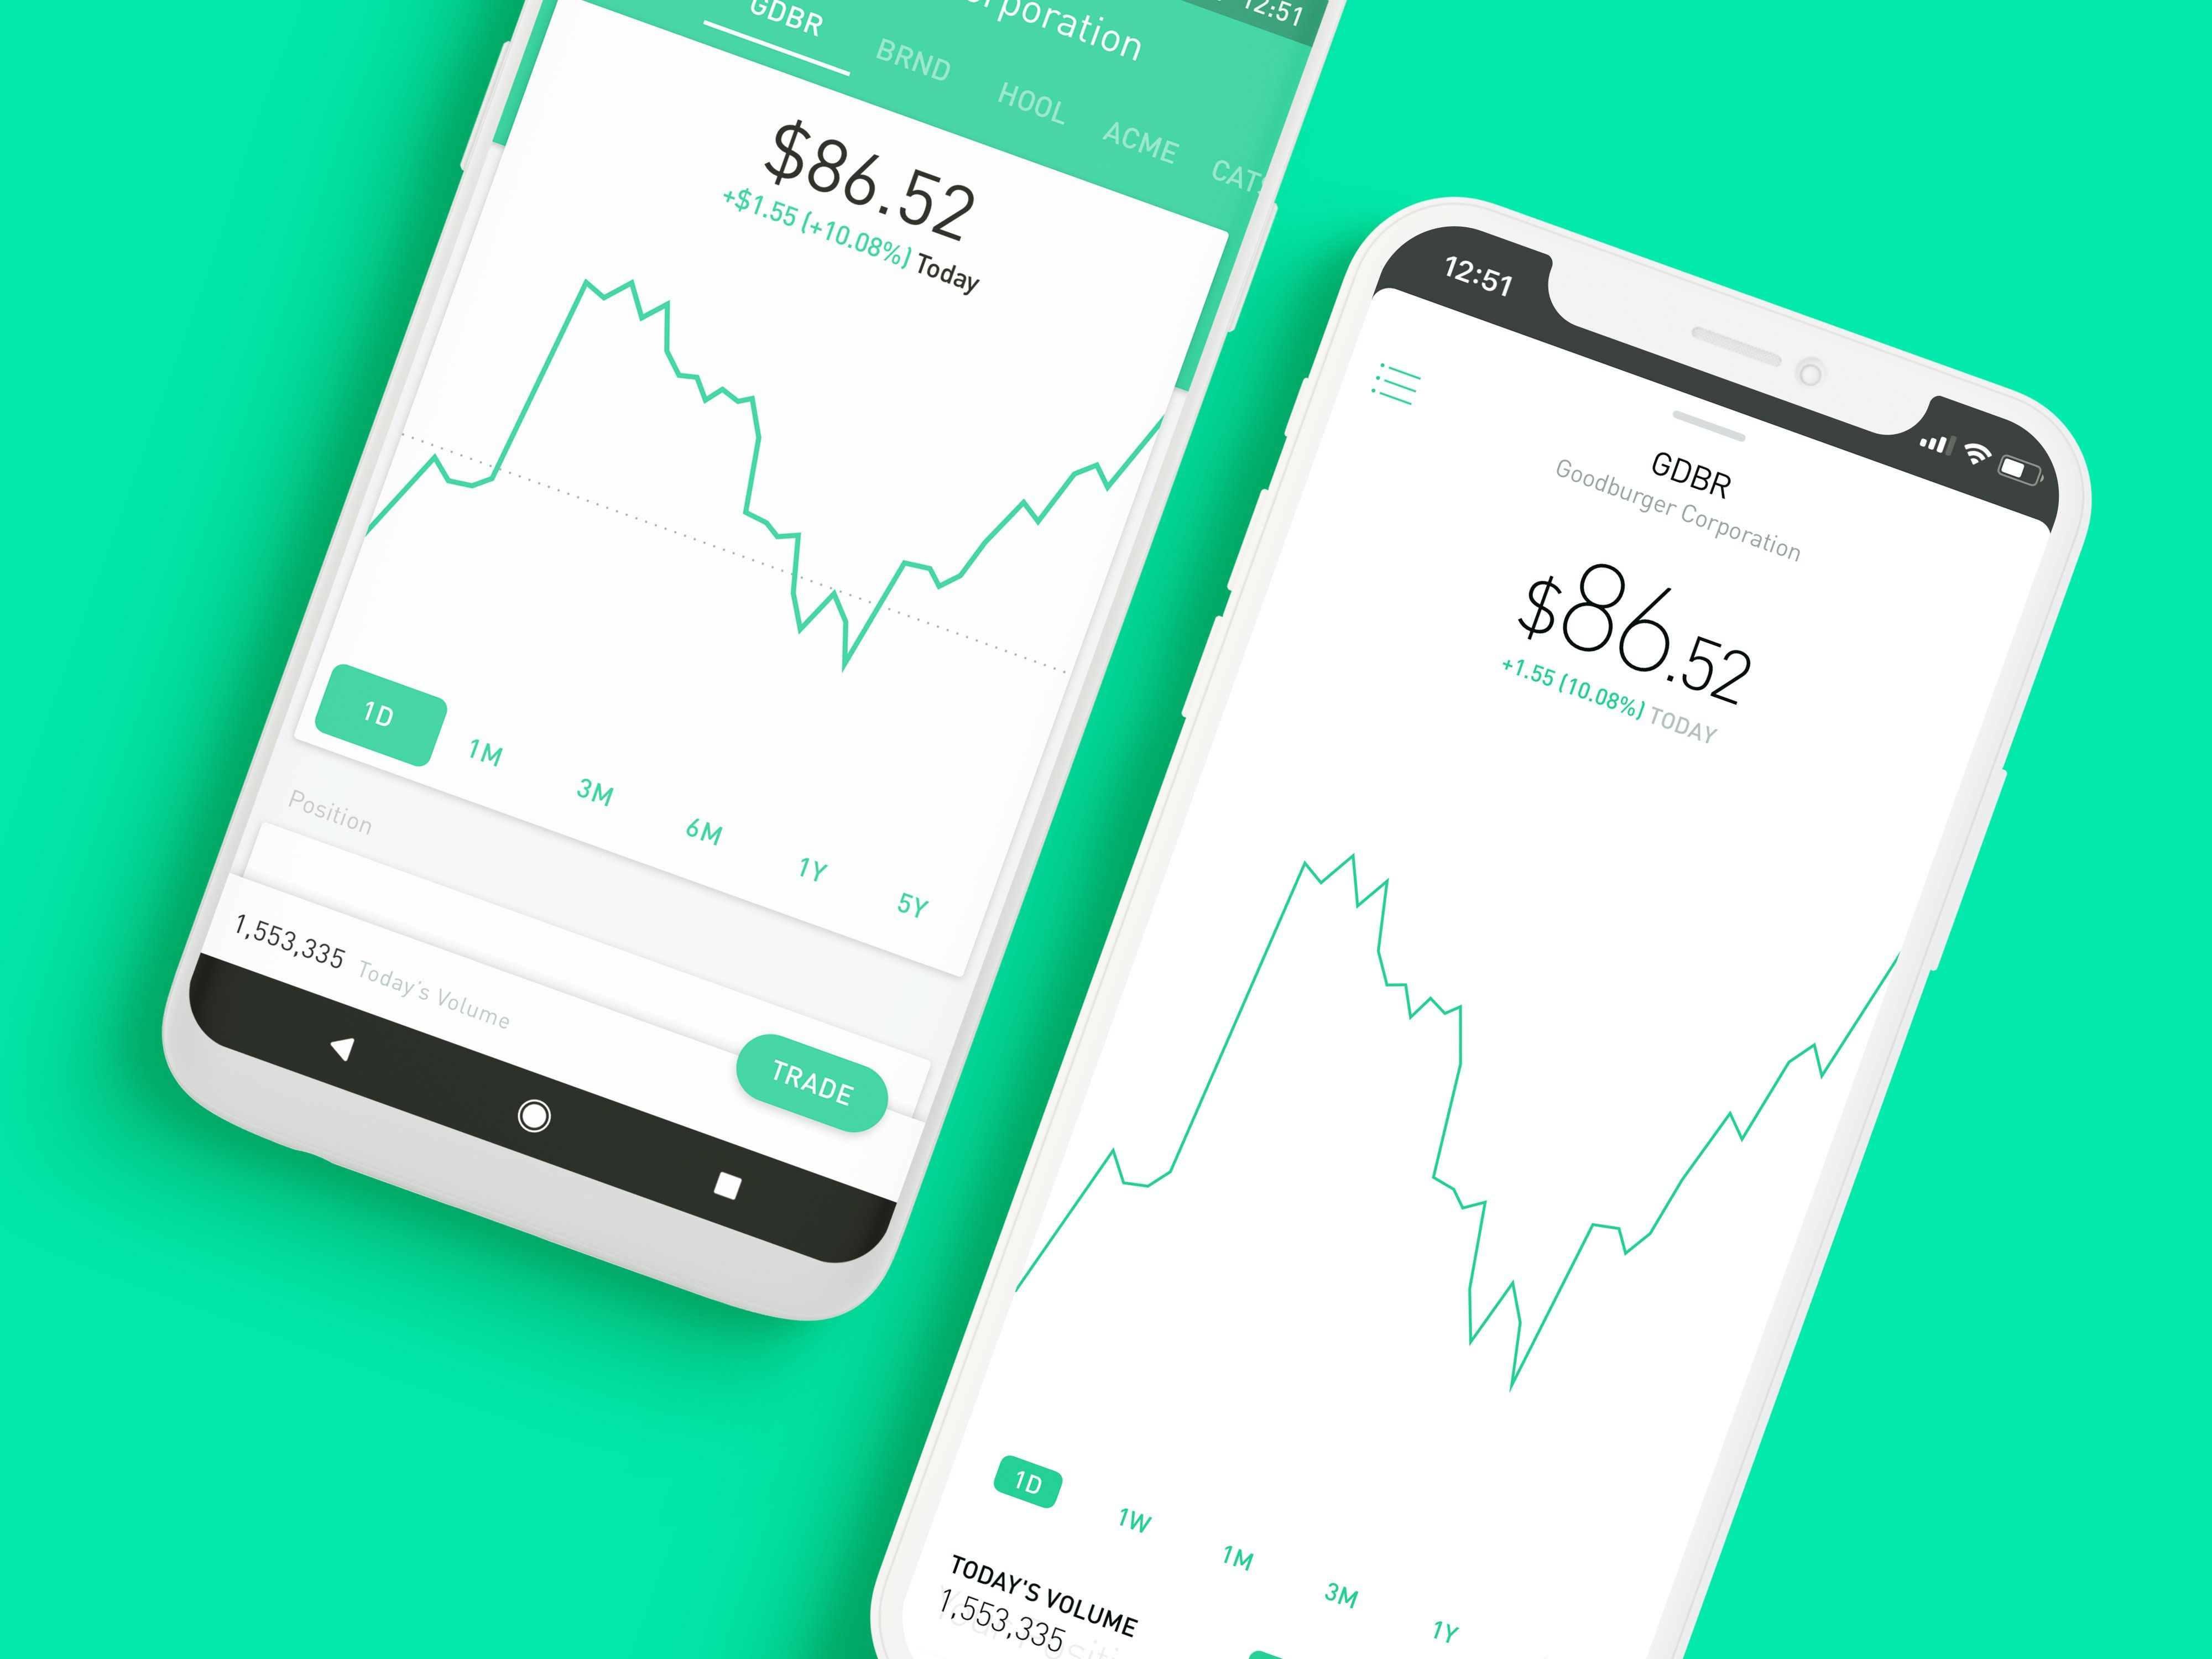 This Free Investing App Has Attracted 5 Million Users